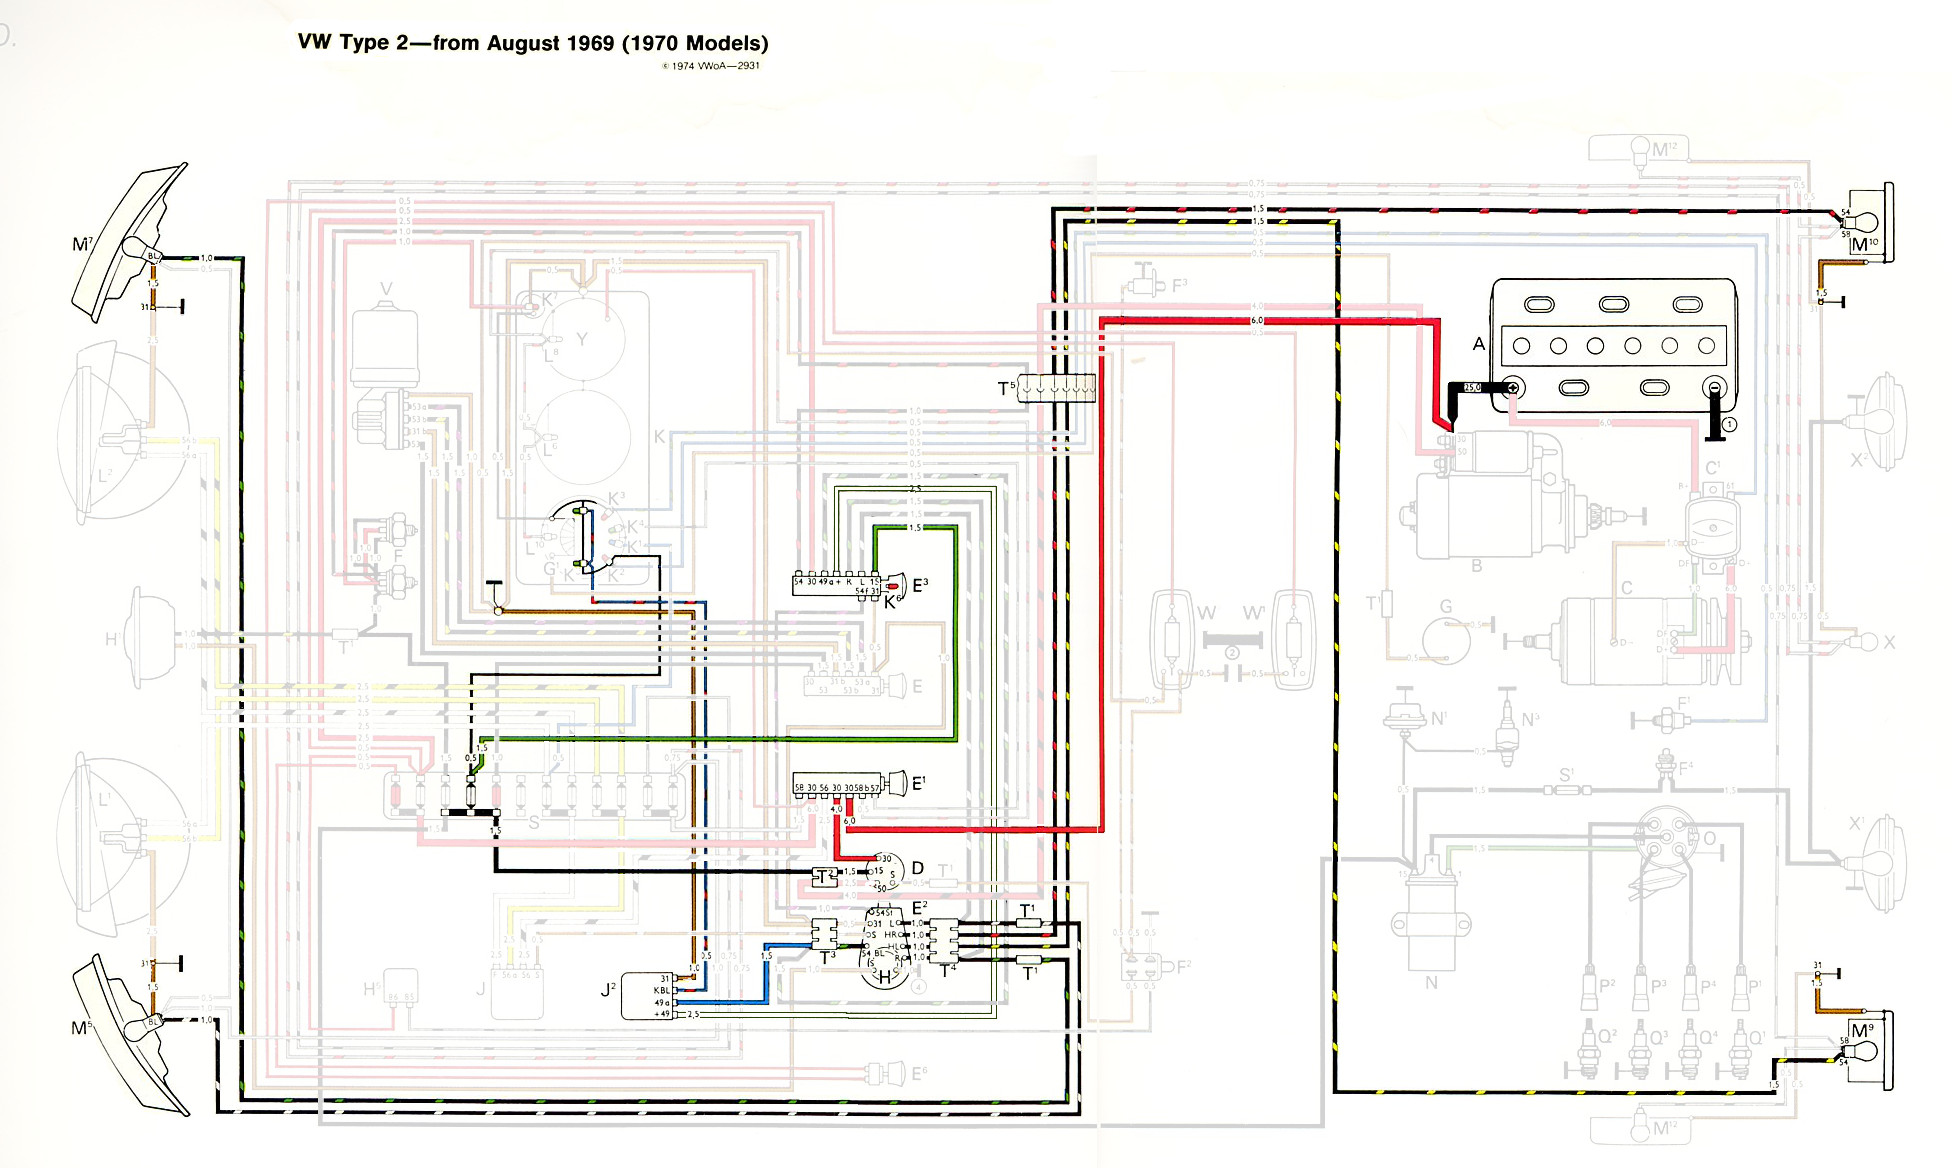 1970bus_signals thesamba com type 2 wiring diagrams 1970 vw beetle wiring diagram at panicattacktreatment.co